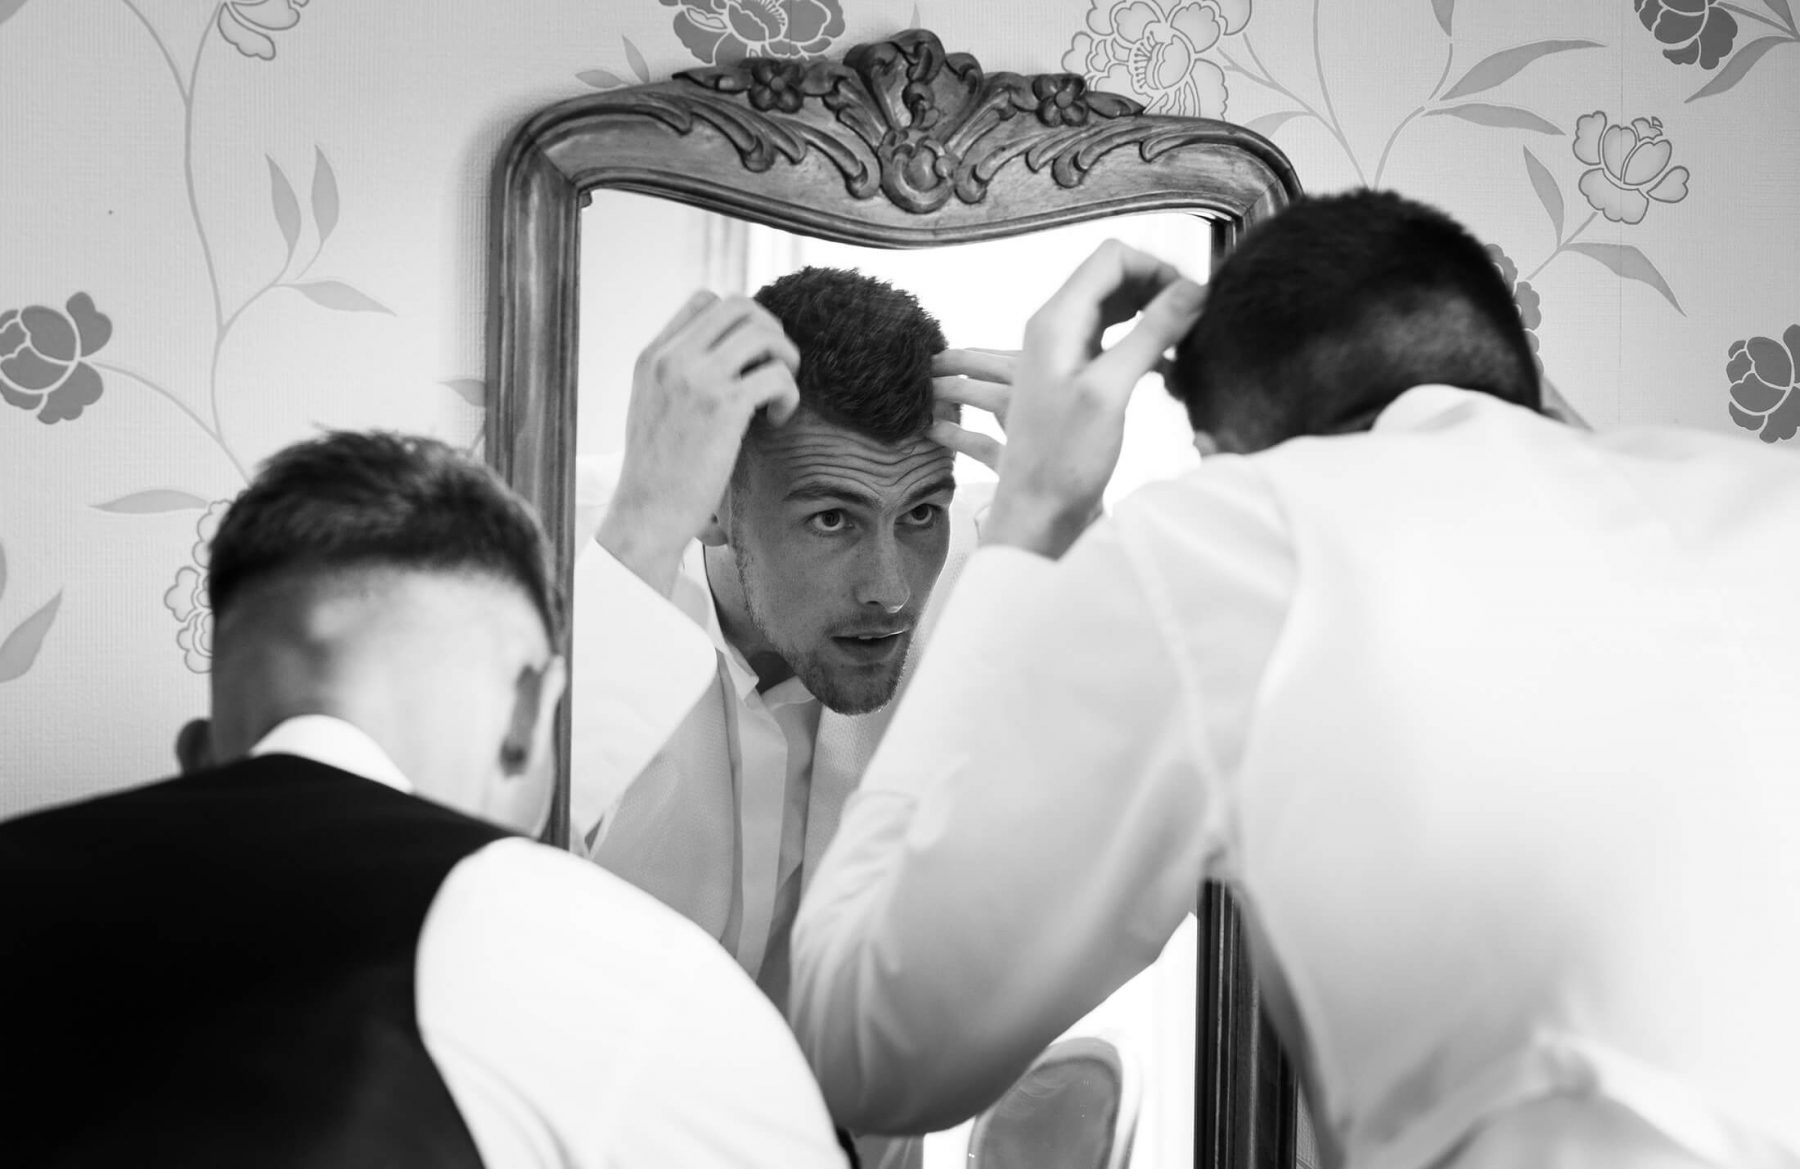 A groom does his hair before the wedding during groom prep